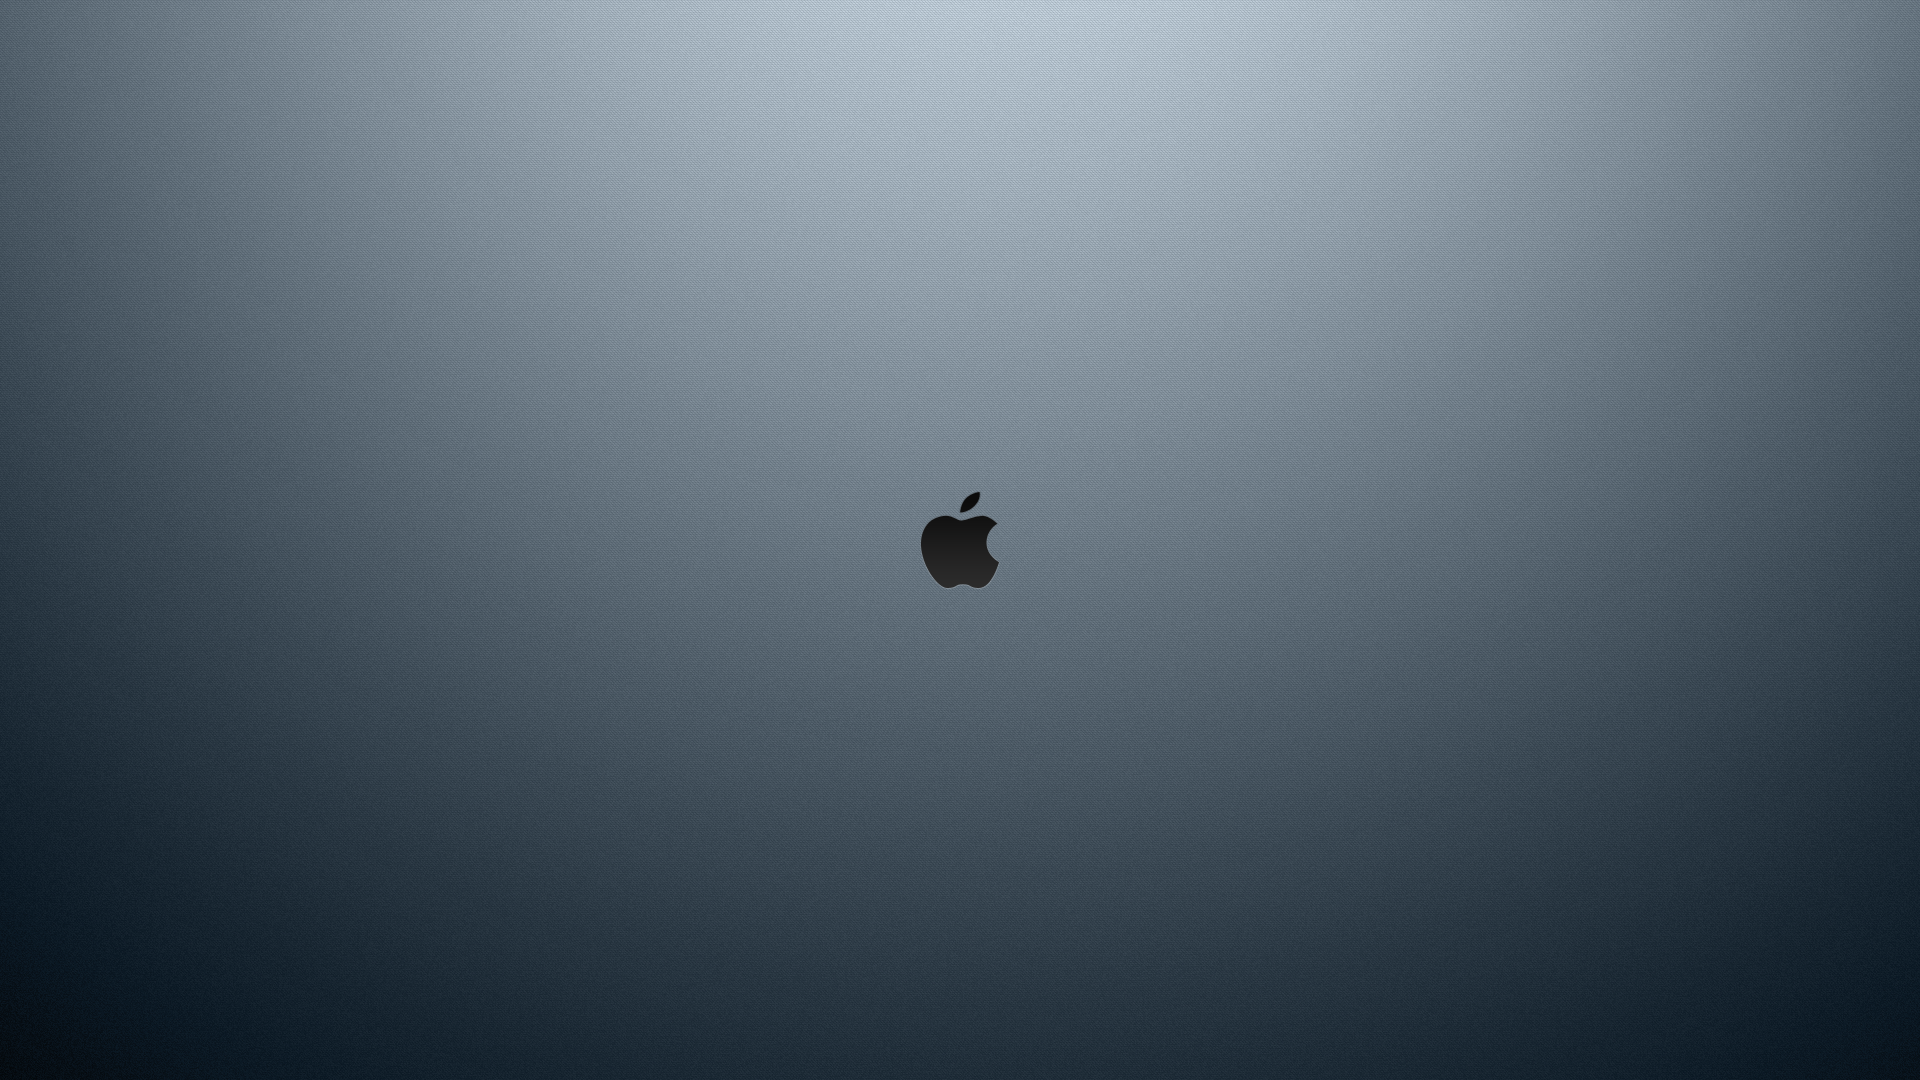 Free Download Download Apple Os X Gradient Wallpaper Hd Wallpaper 1920x1080 For Your Desktop Mobile Tablet Explore 75 Mac Os X Hd Wallpaper Mac Os X Wallpaper Os X